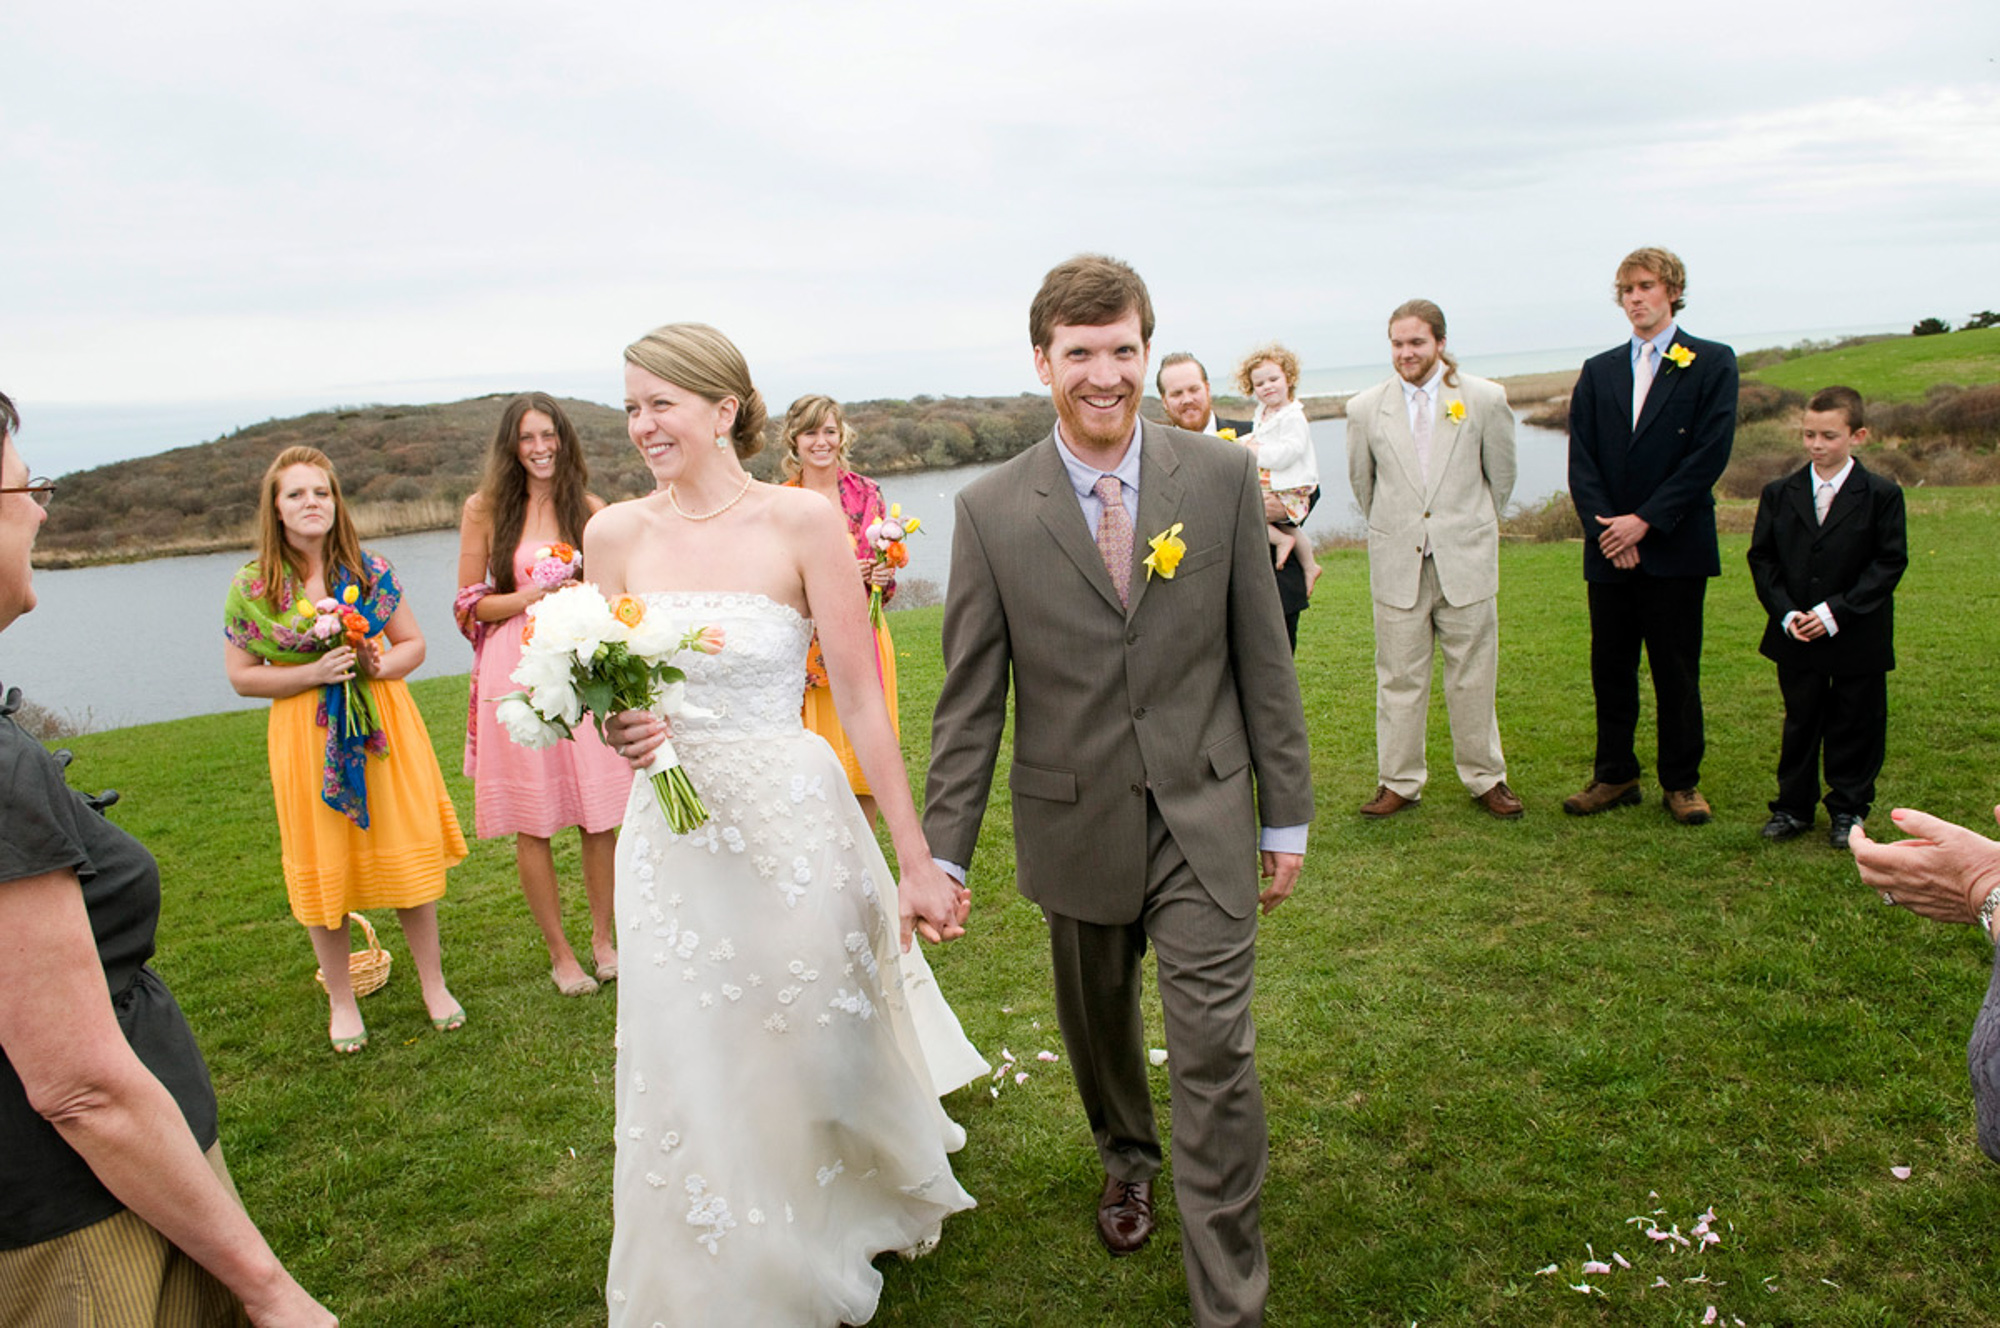 A bride and groom walking at Allen Sheep Farm in Chilmark  photo by David Welch Photography